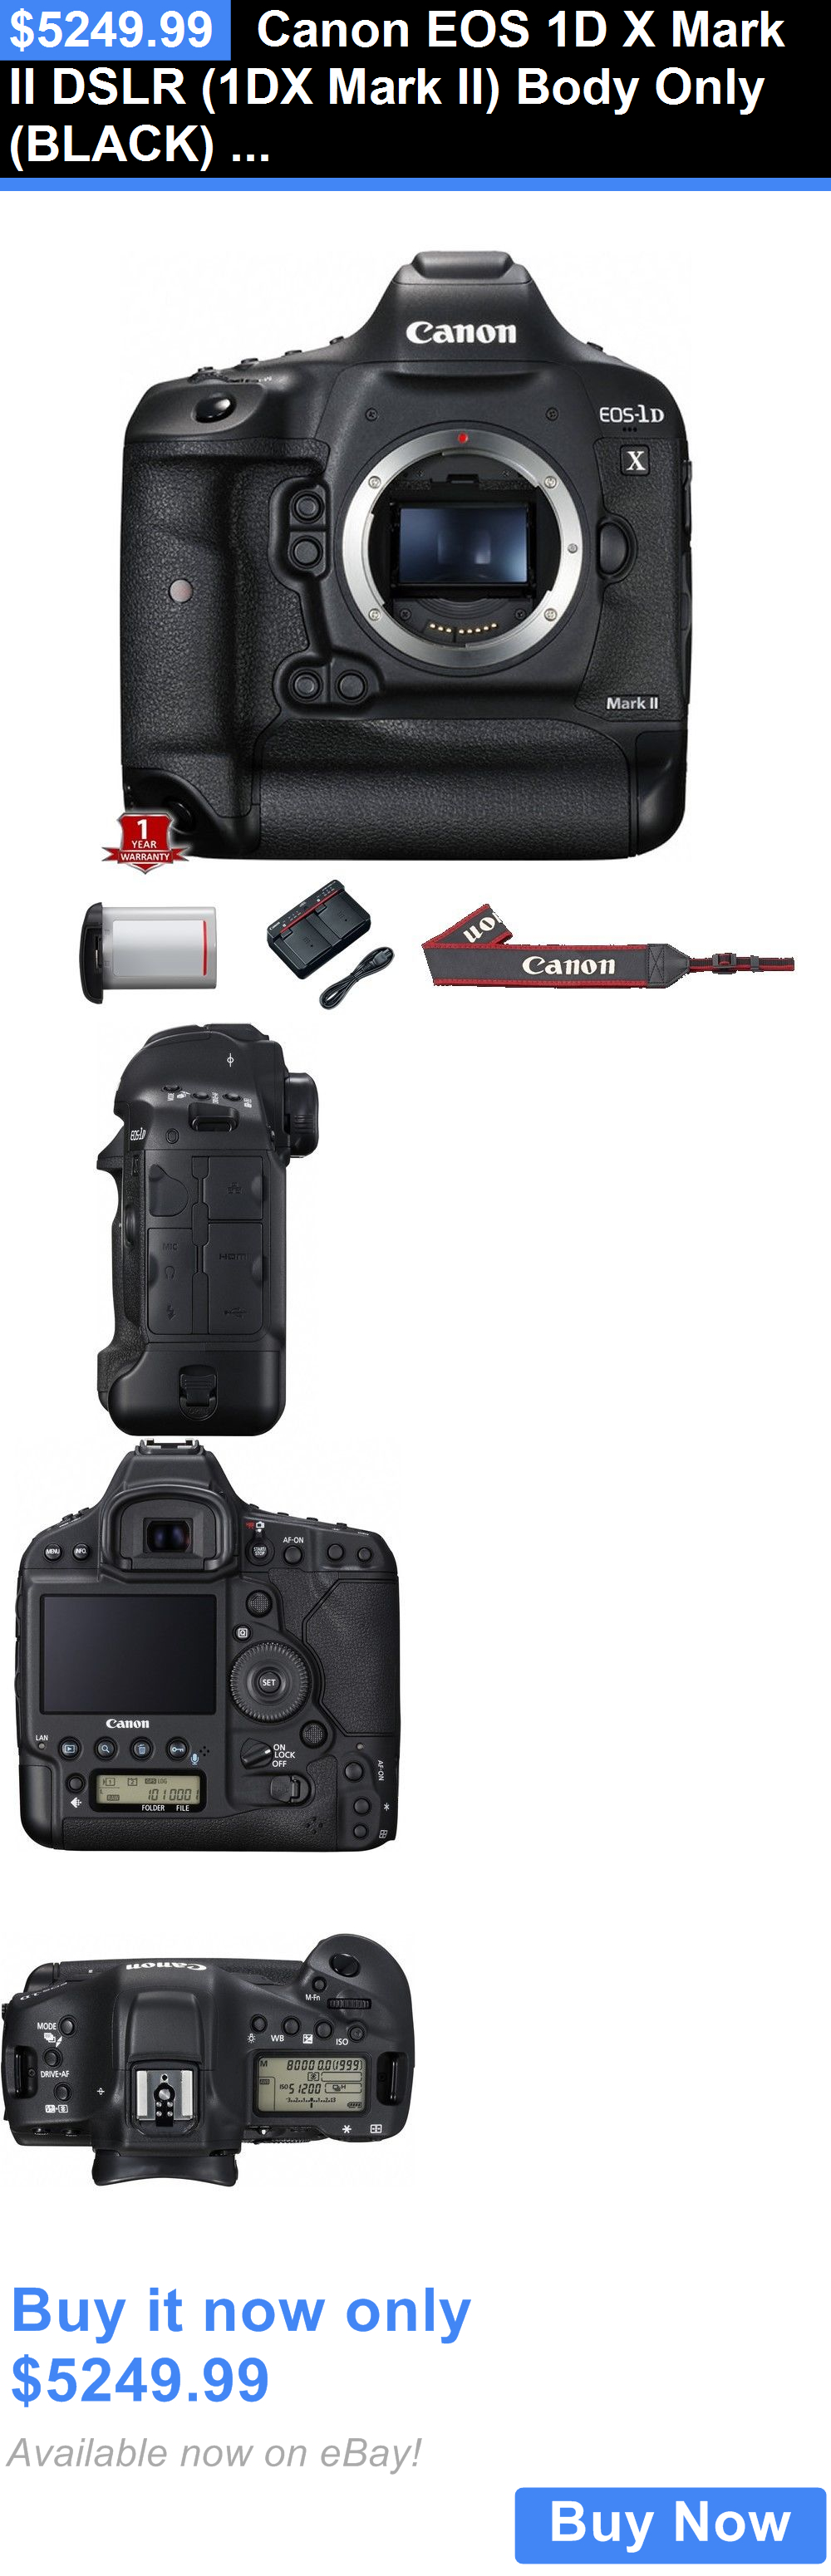 Photo And Video Canon Eos 1d X Mark Ii Dslr 1dx Mark Ii Body Only Black New Buy It Now Only 5249 9 Camera Photo Cameras And Accessories Digital Camera